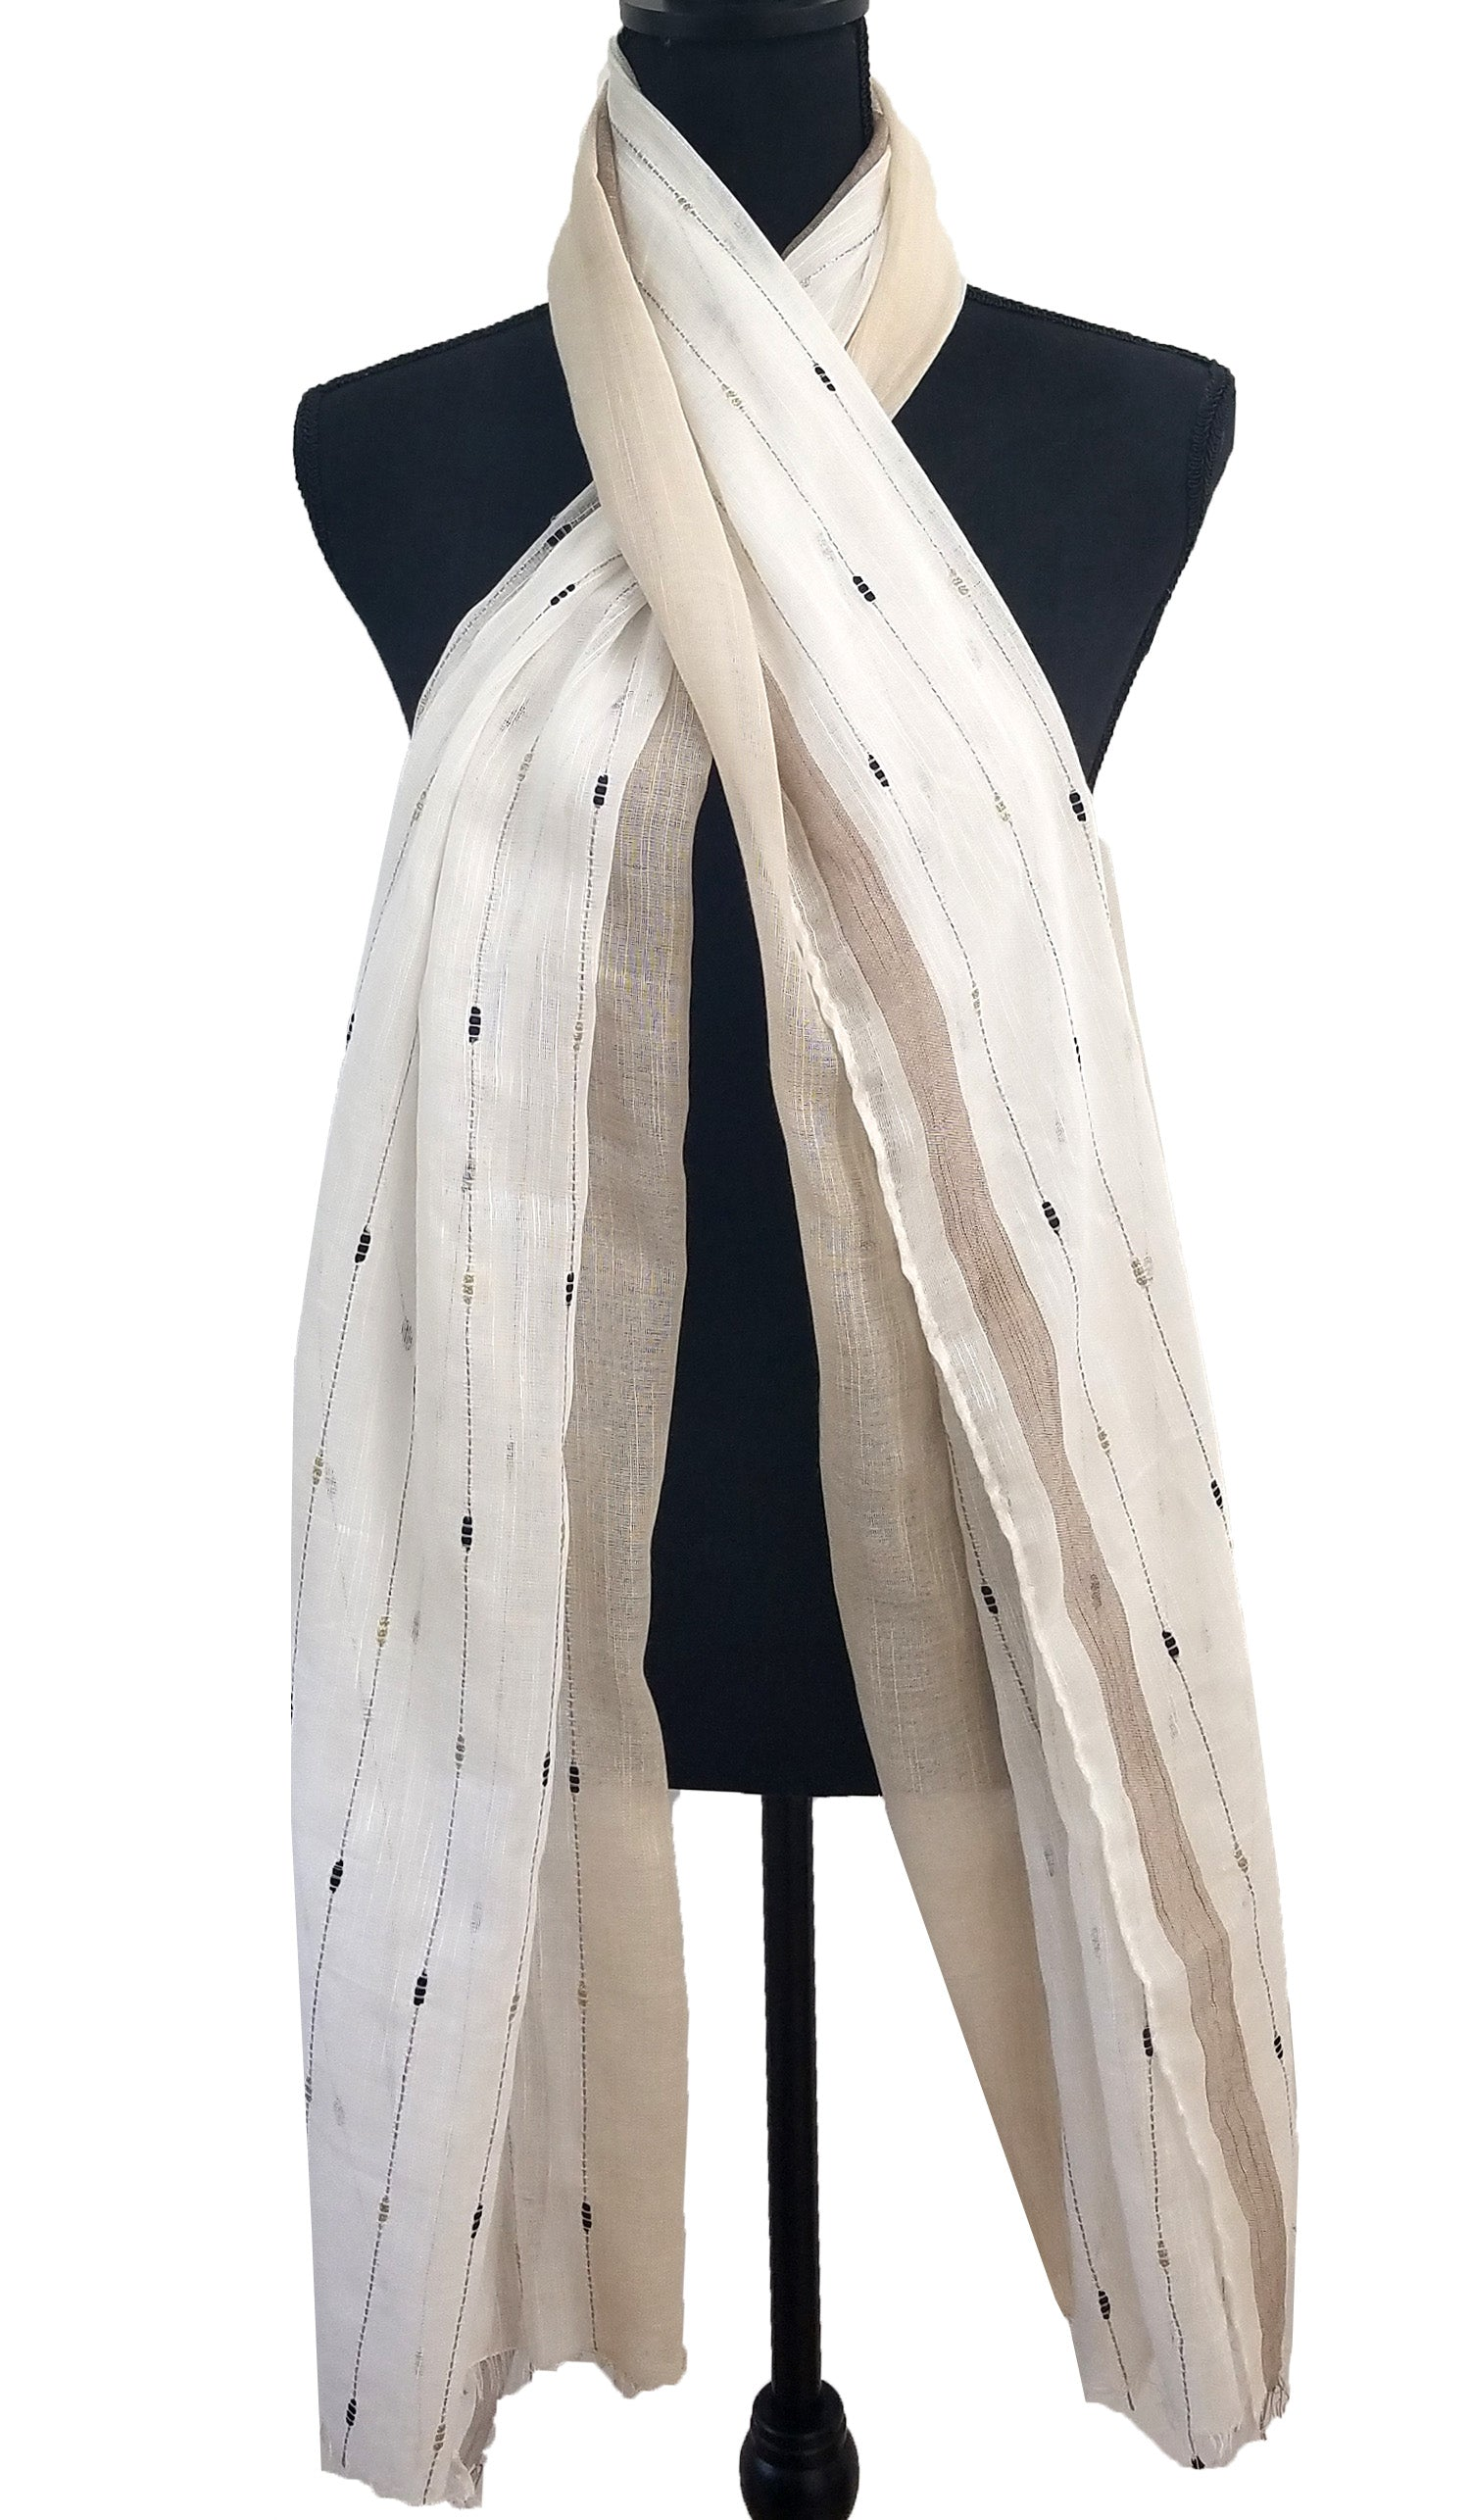 Soft Non slip Striped Wrap Hijab Scarf- Beige and Off white